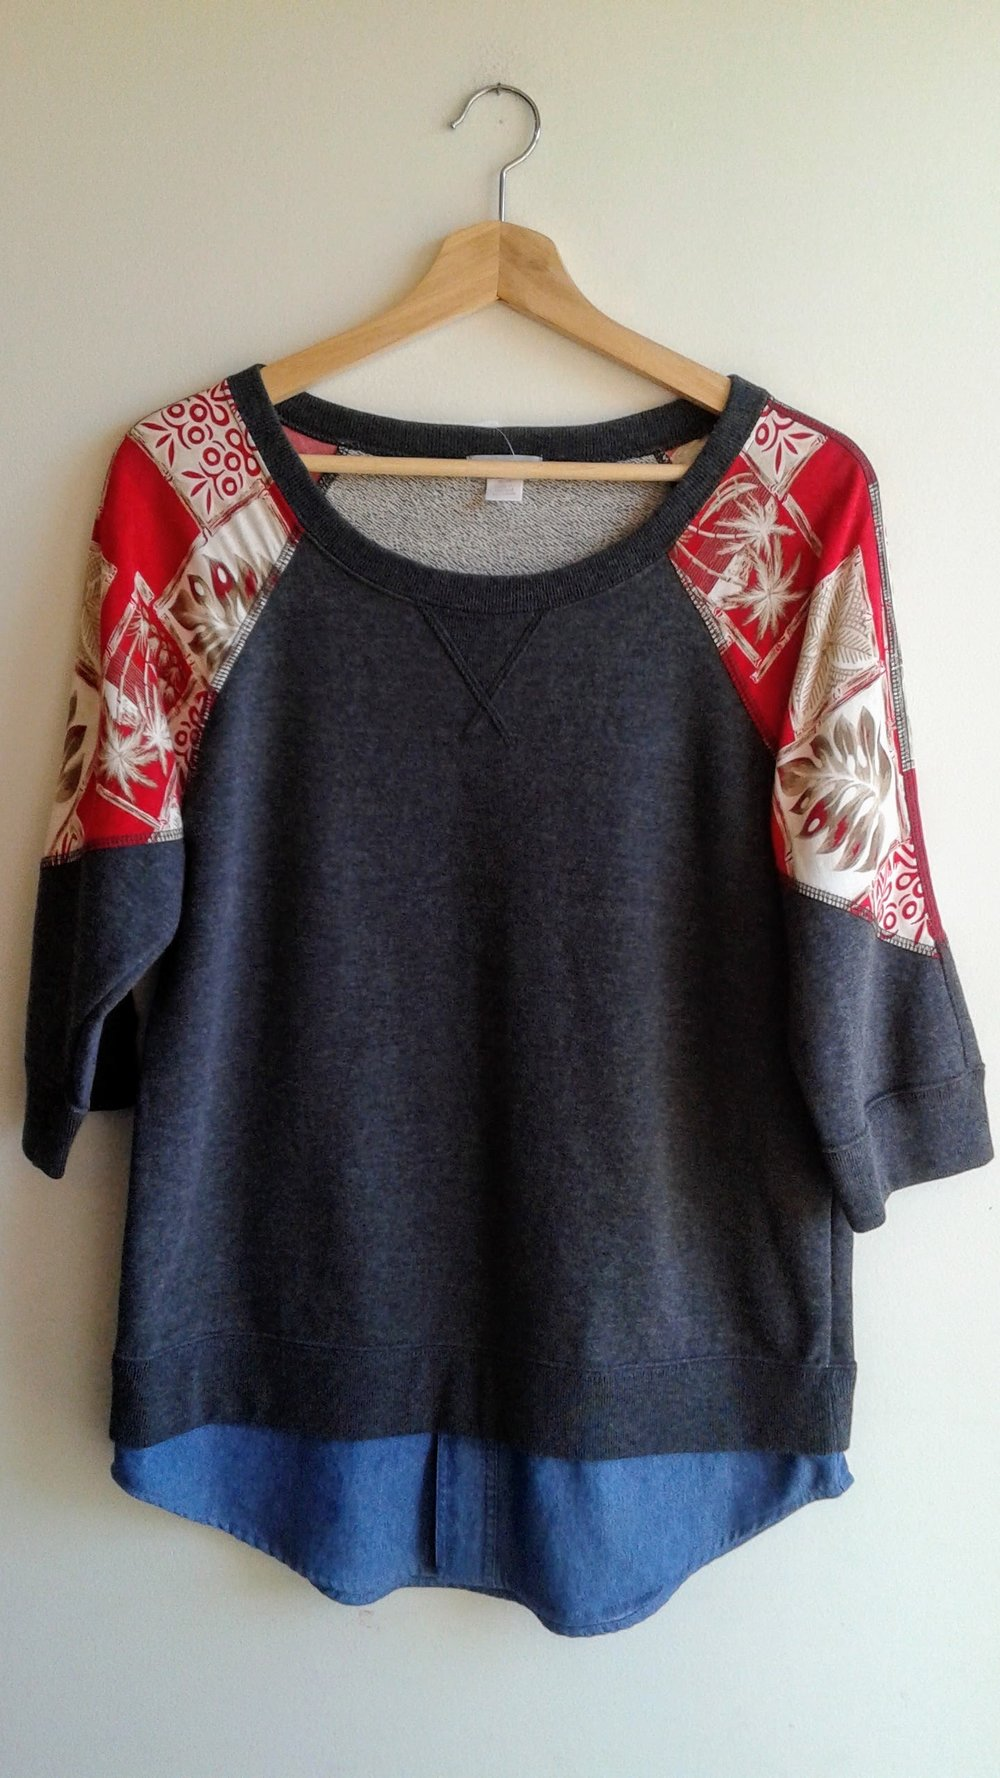 Preloved top; Size M, $32